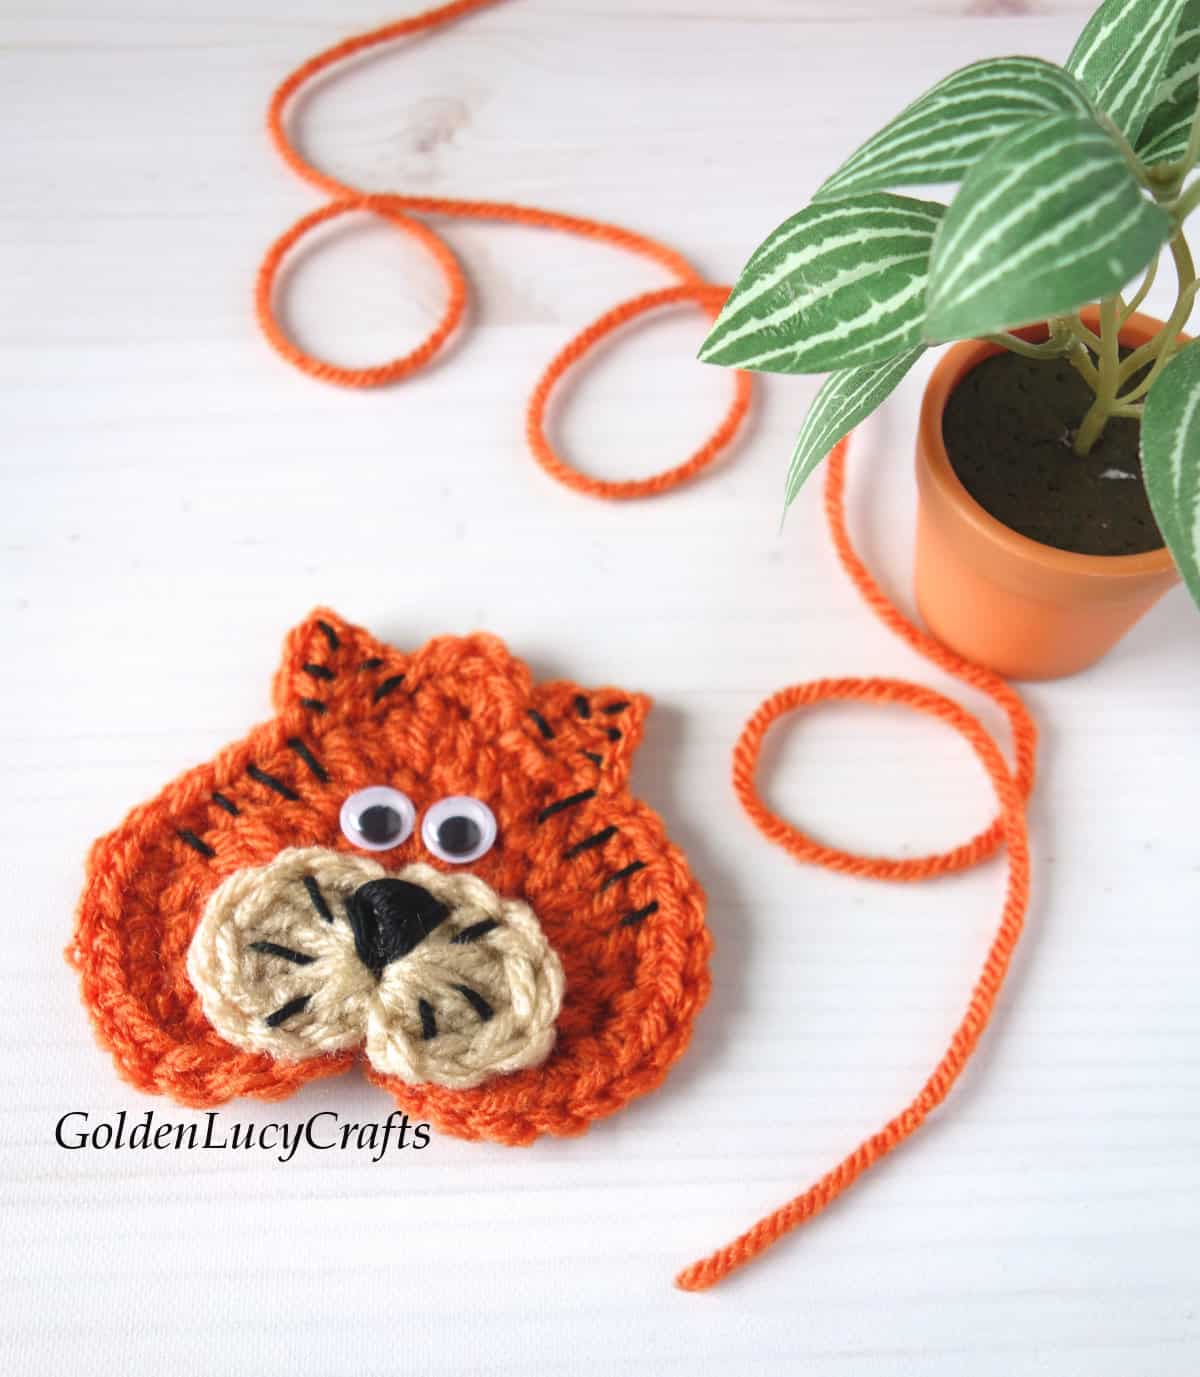 Crochet heart-shaped tiger applique, small potted plant in the background.